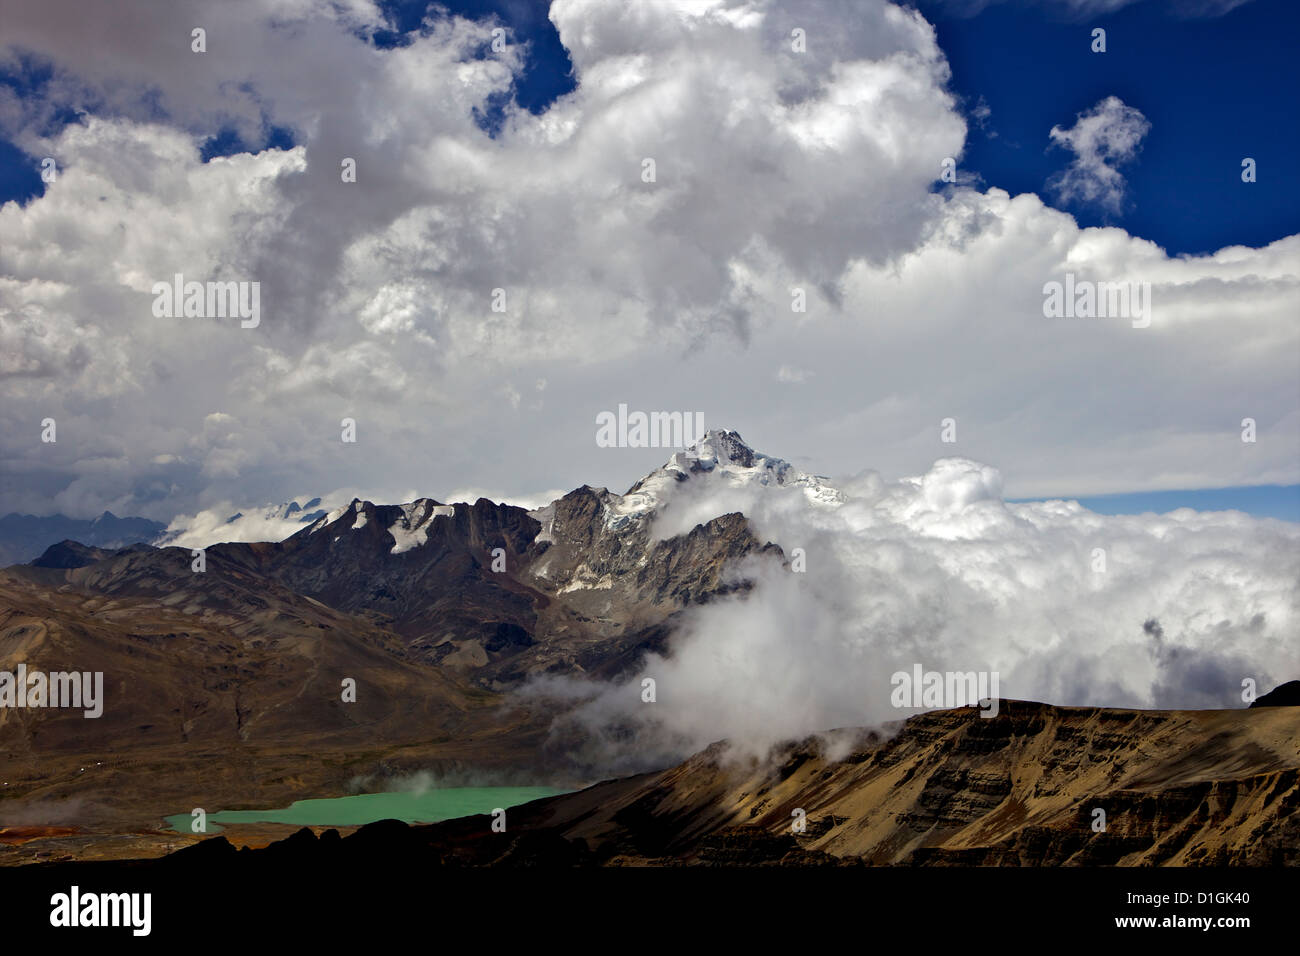 Mount Huayna Potosi viewed from Mount Chacaltaya, Calahuyo, Cordillera real, Bolivia, Andes, South America - Stock Image